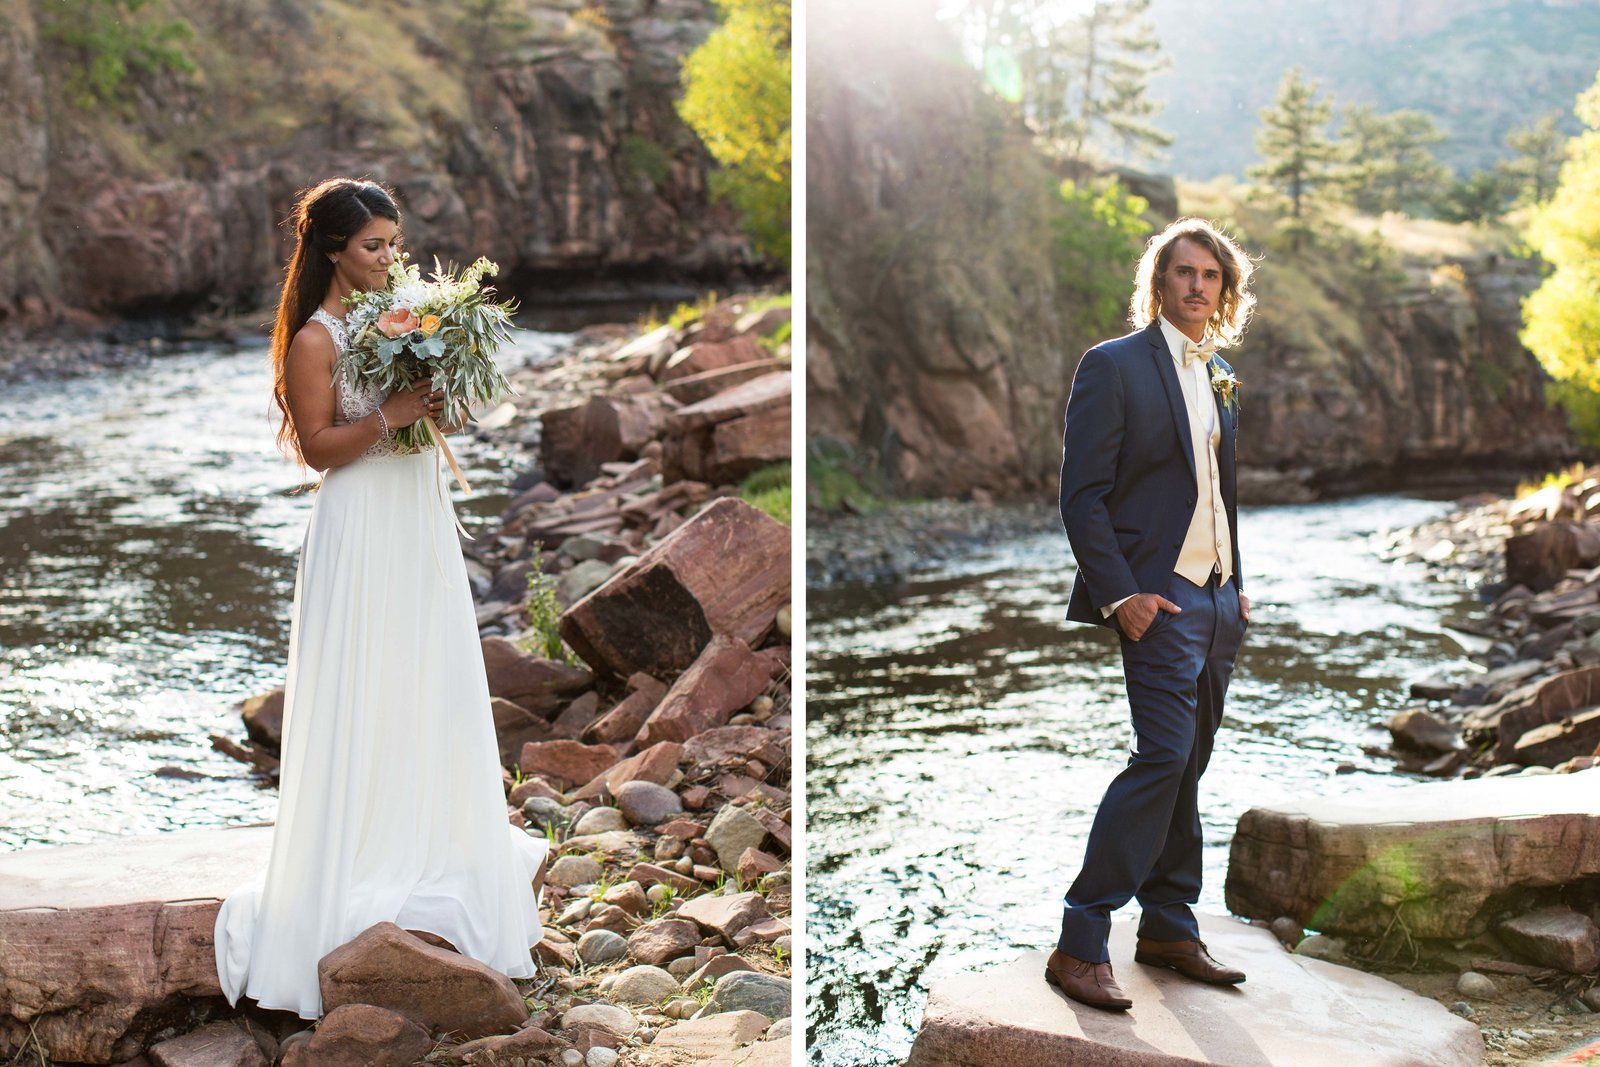 Jessi-Zach-Photography-Colorado-Mountain-Wedding-Photographers-Purple-Summer-Events-River-Bend_14